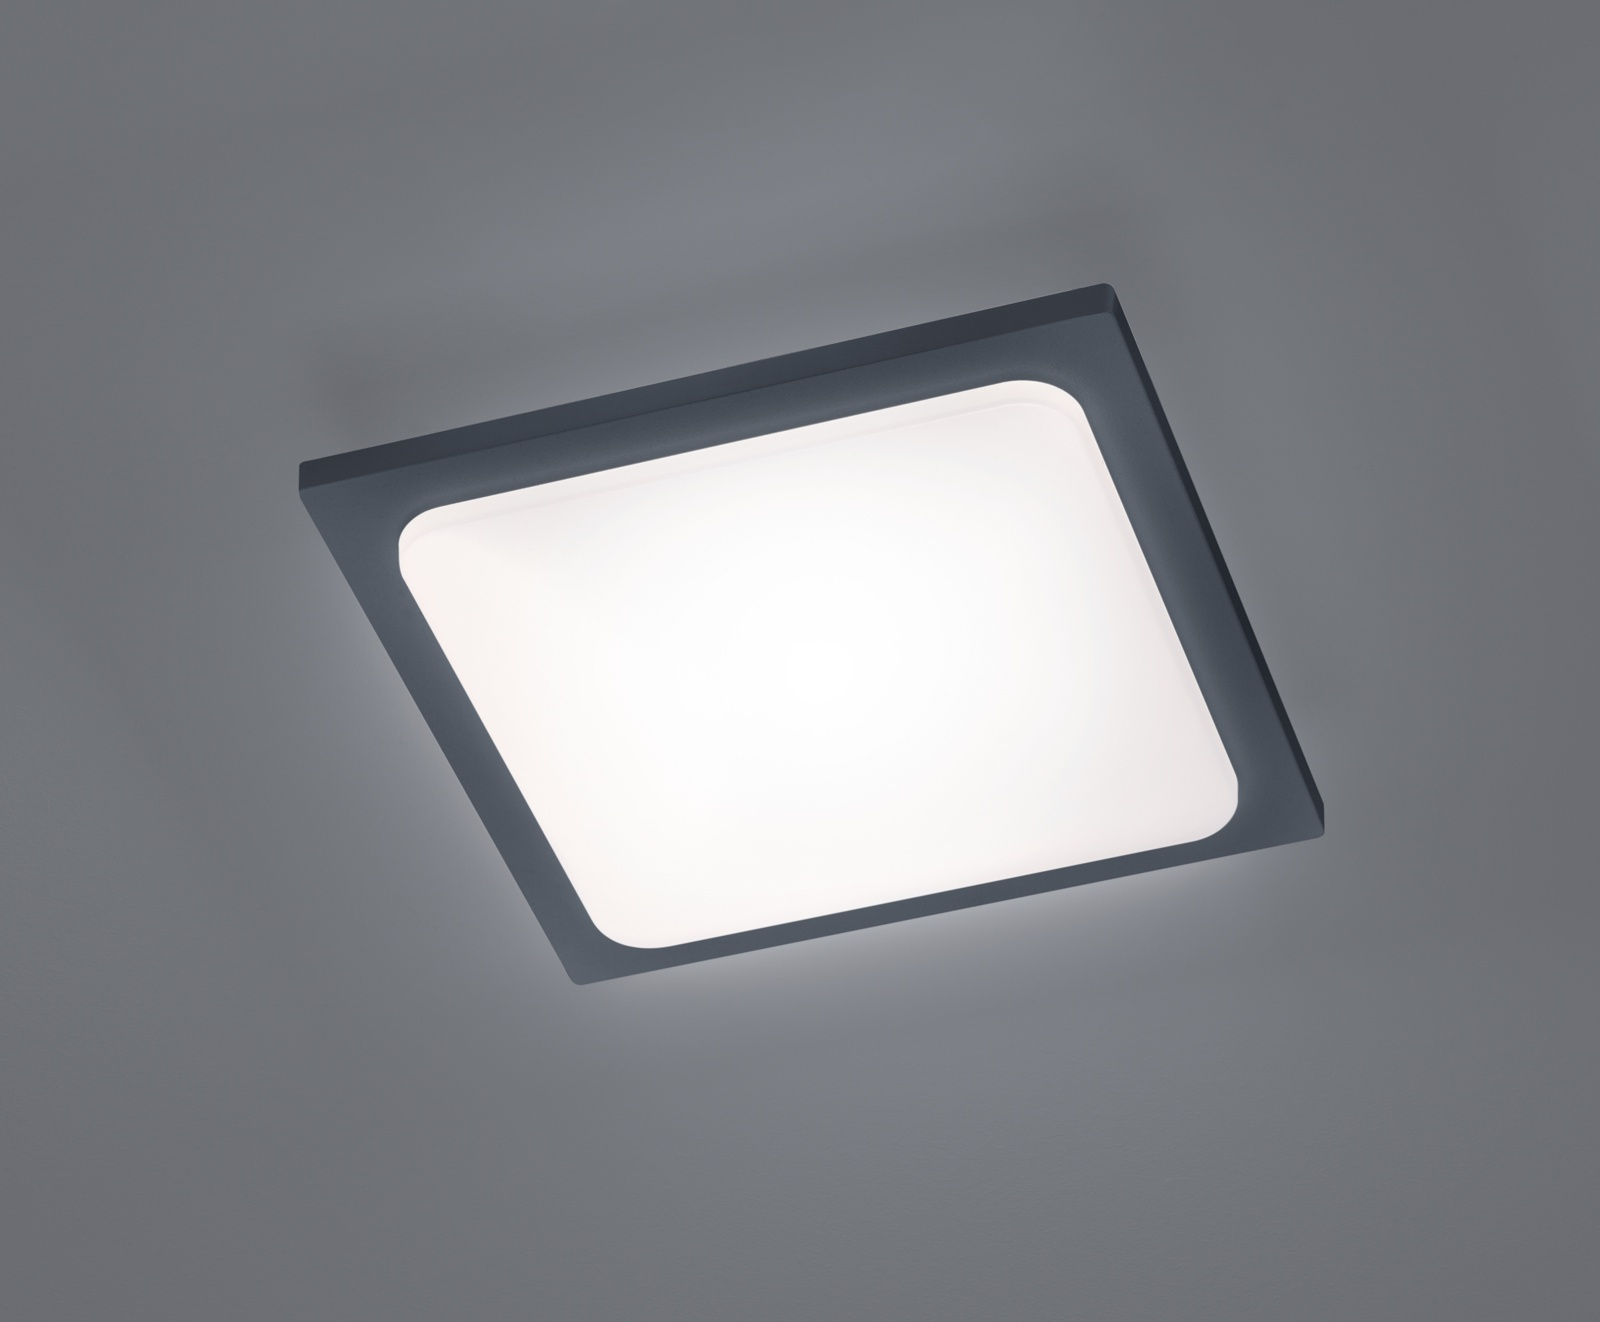 LED-kattovalaisin Trave 250x250x50 mm antrasiitti